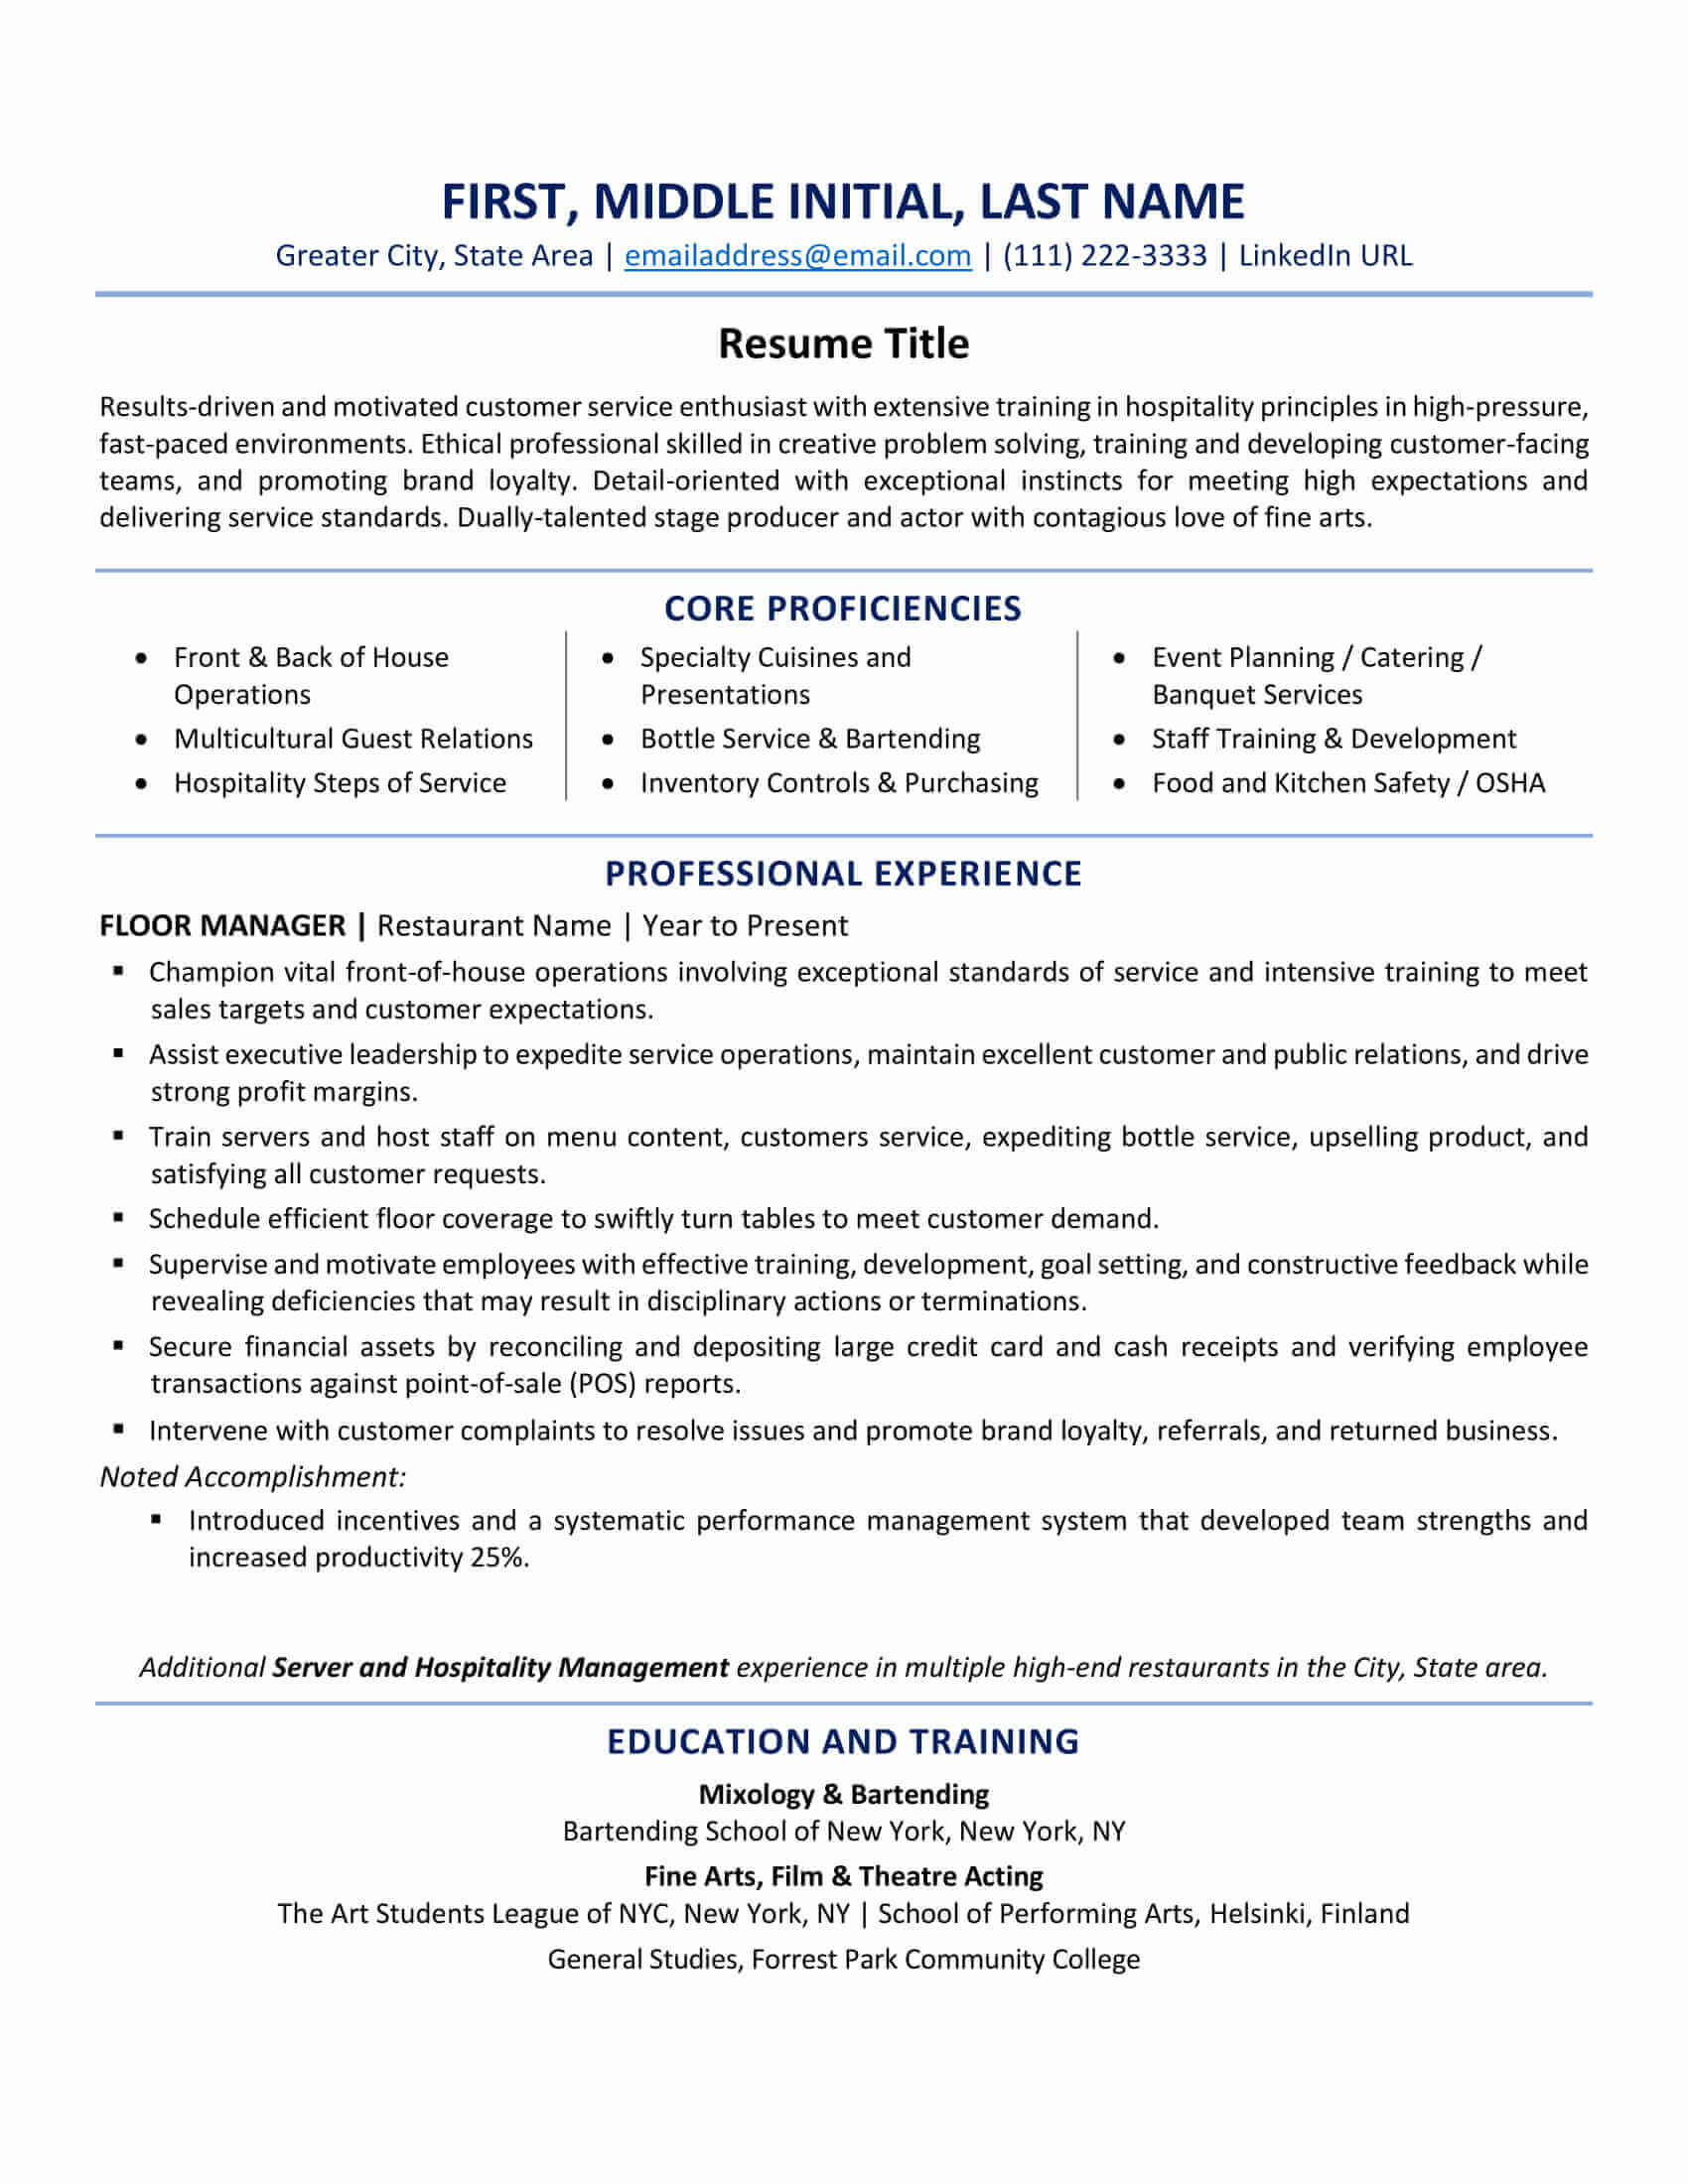 ats resume test free checker formatting examples applicant tracking system your when Resume Applicant Tracking System Test Your Resume